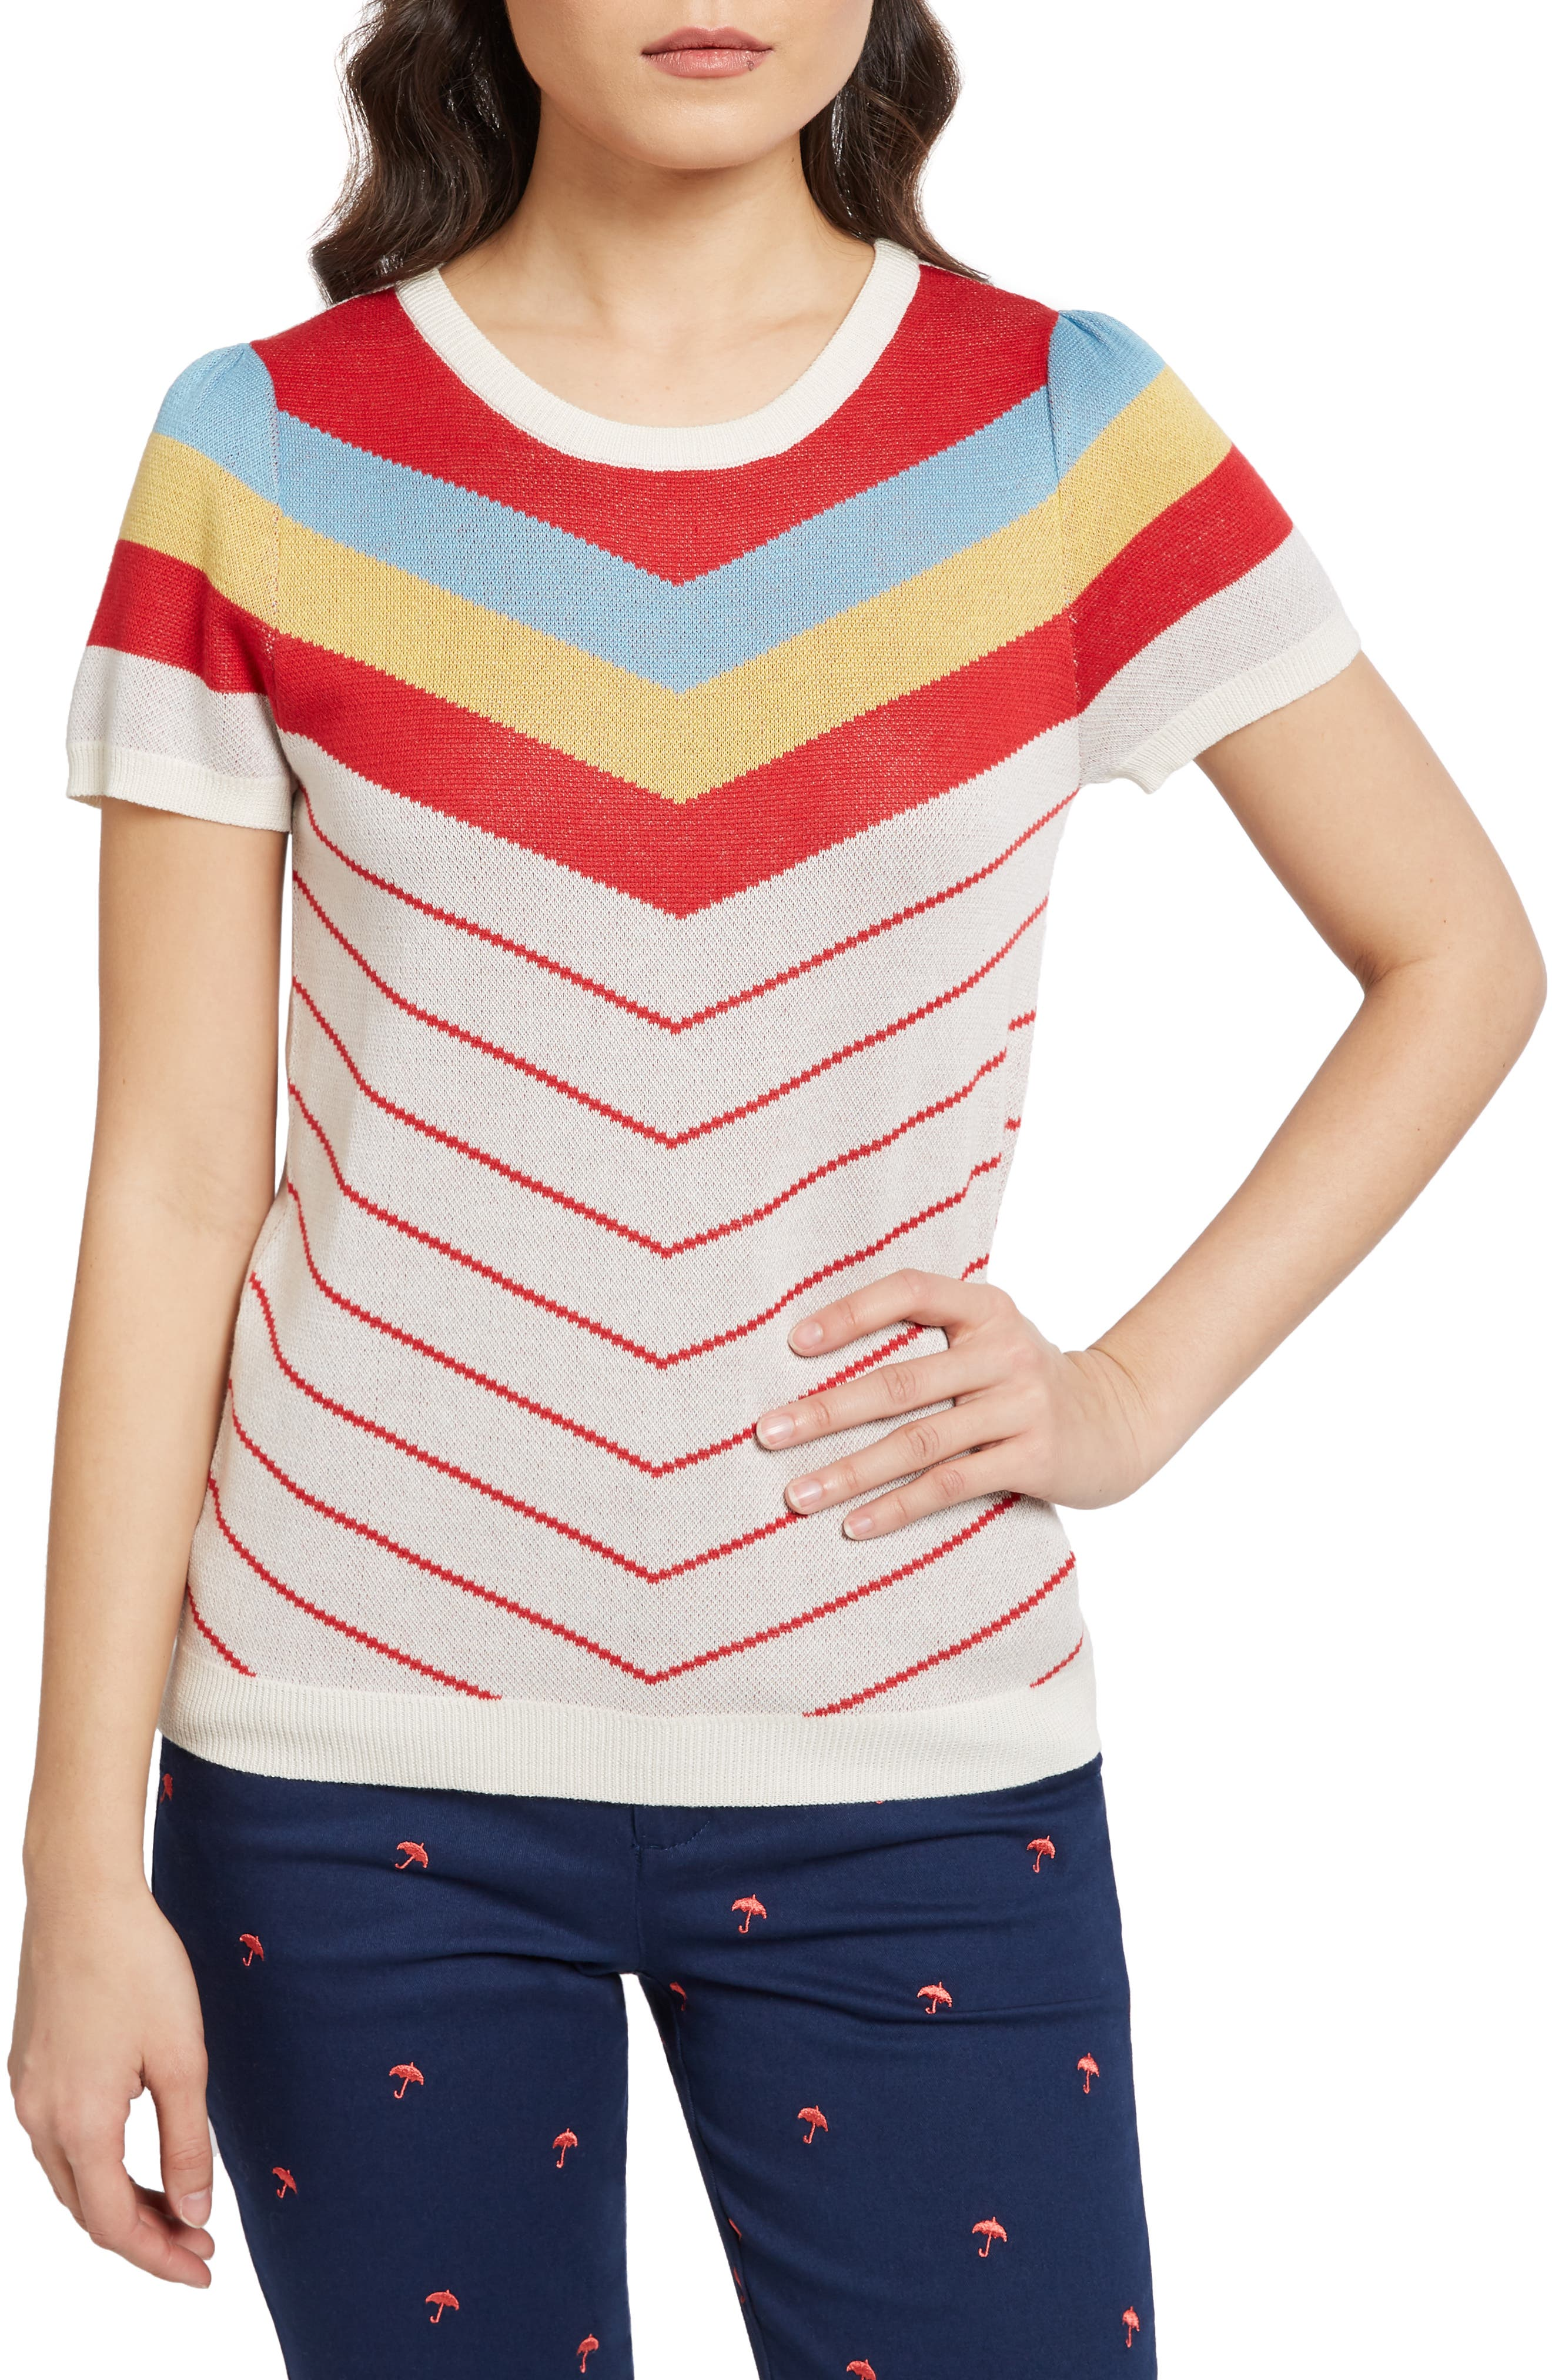 79181368b3 Women's 70s Shirts, Blouses, Hippie Tops Womens Modcloth Vintage Stripe  Sweater $55.00 AT vintagedancer